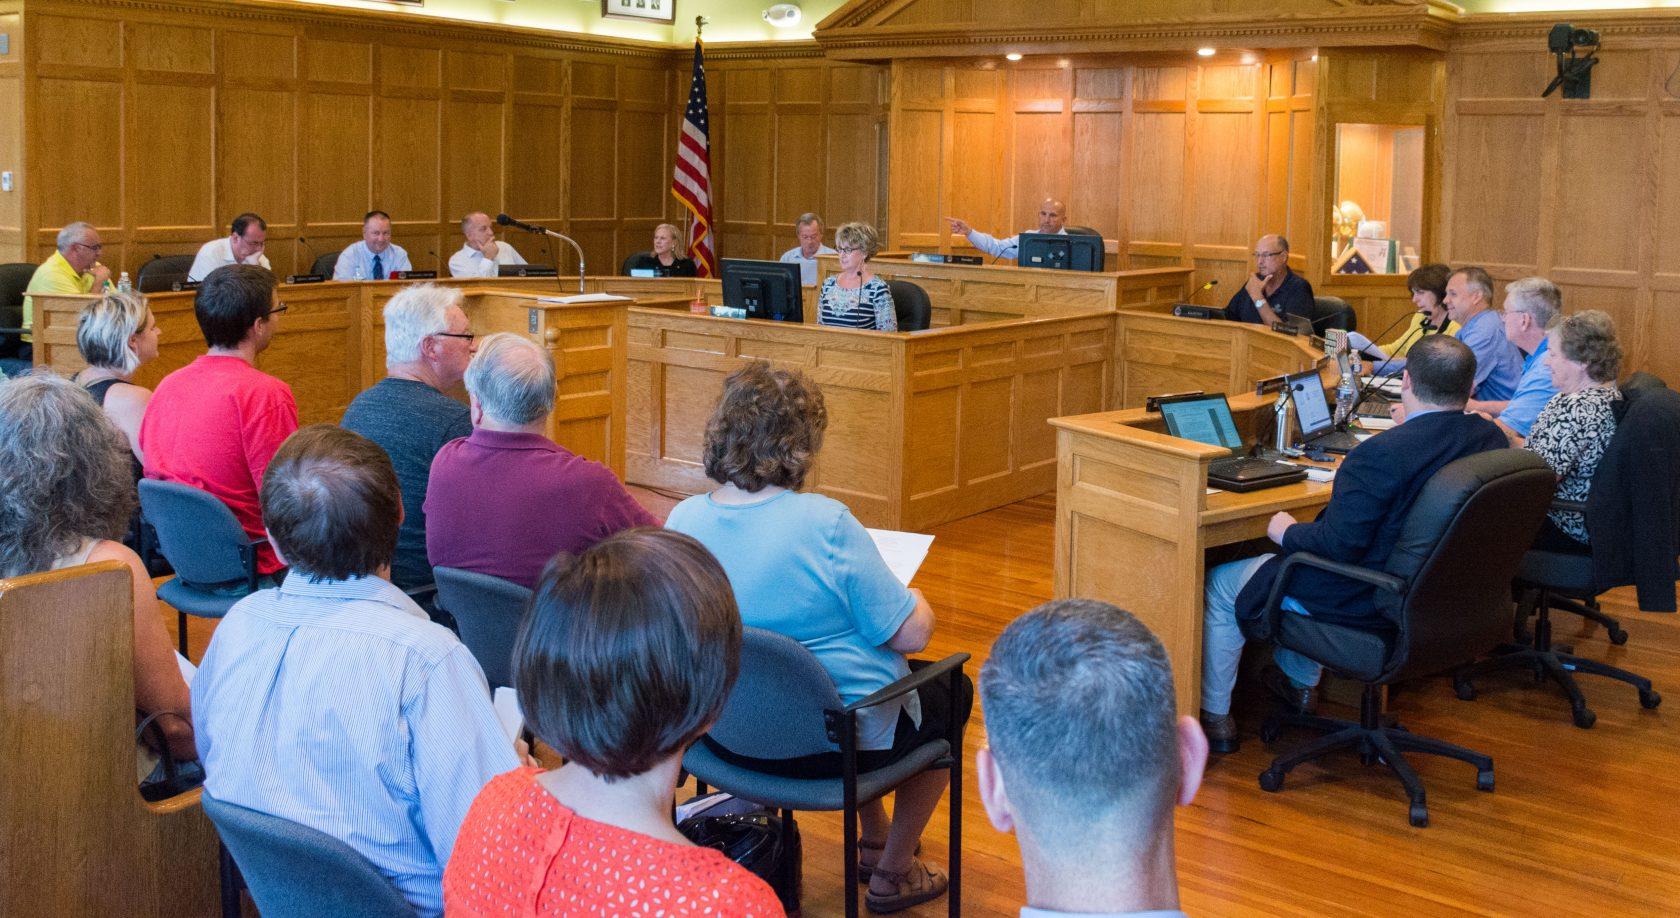 City Council tackles agenda items